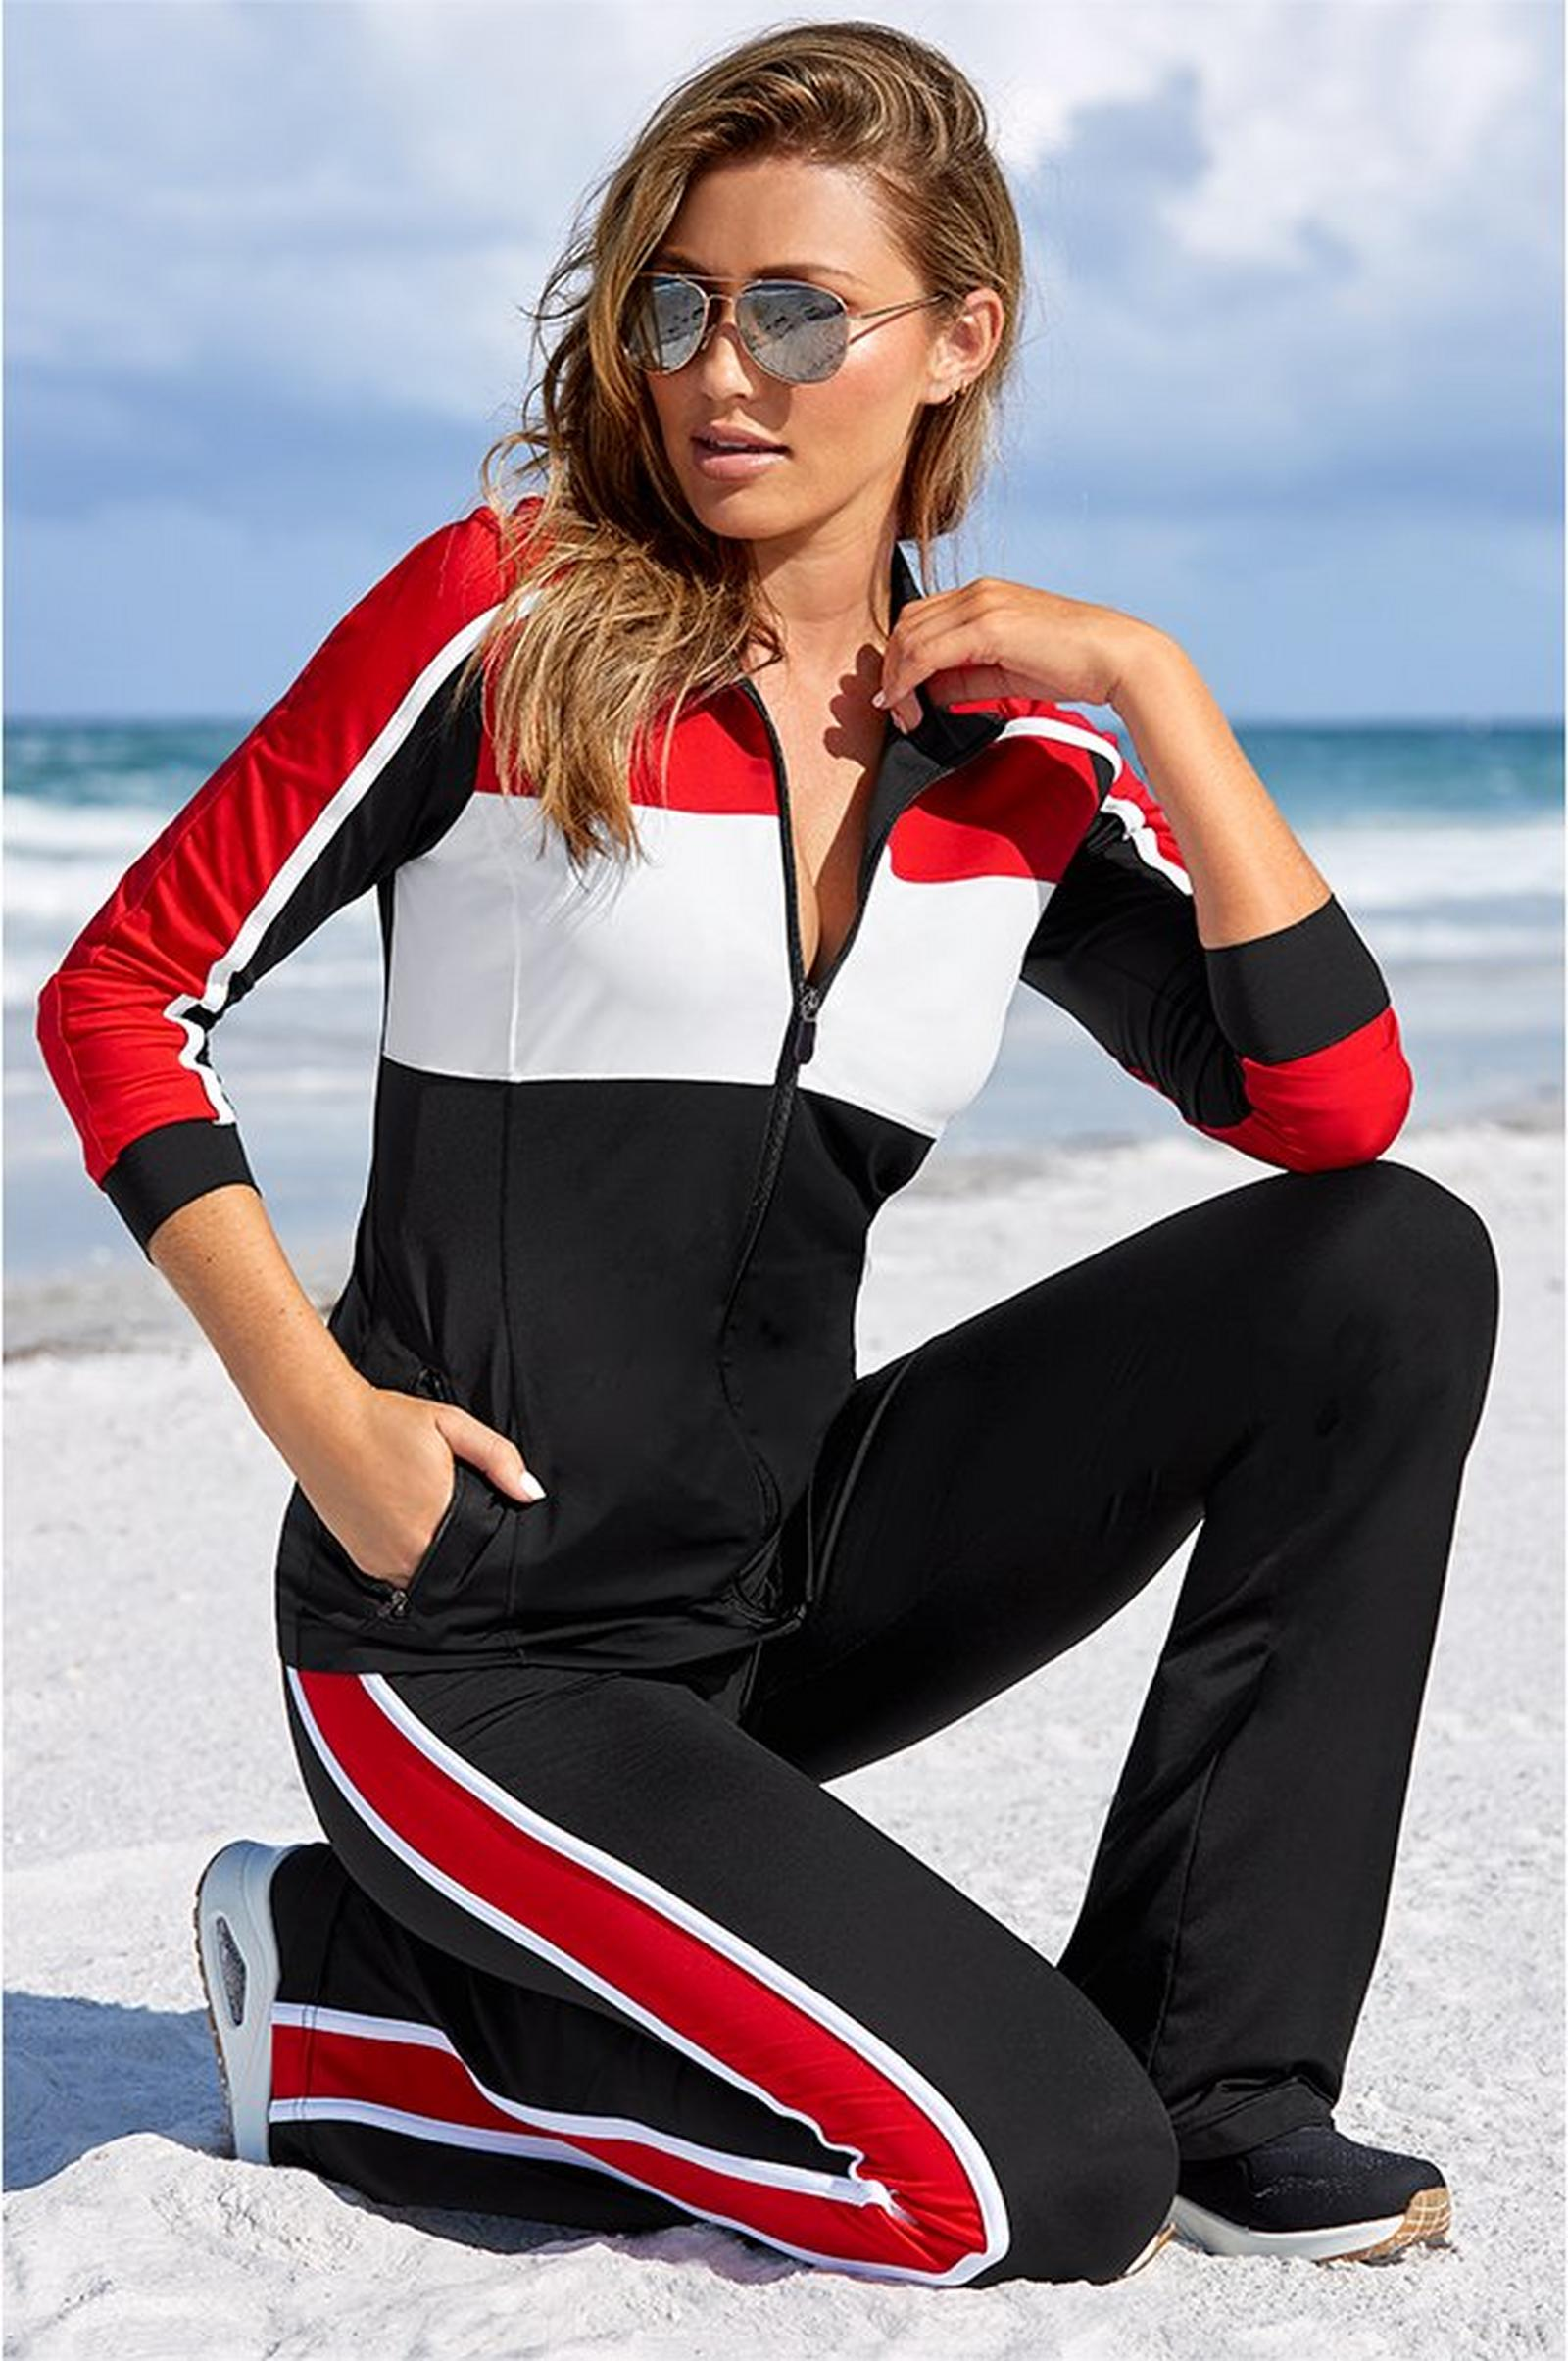 model kneeling on the beach wearing a red, black, and white color block sport coordinates.